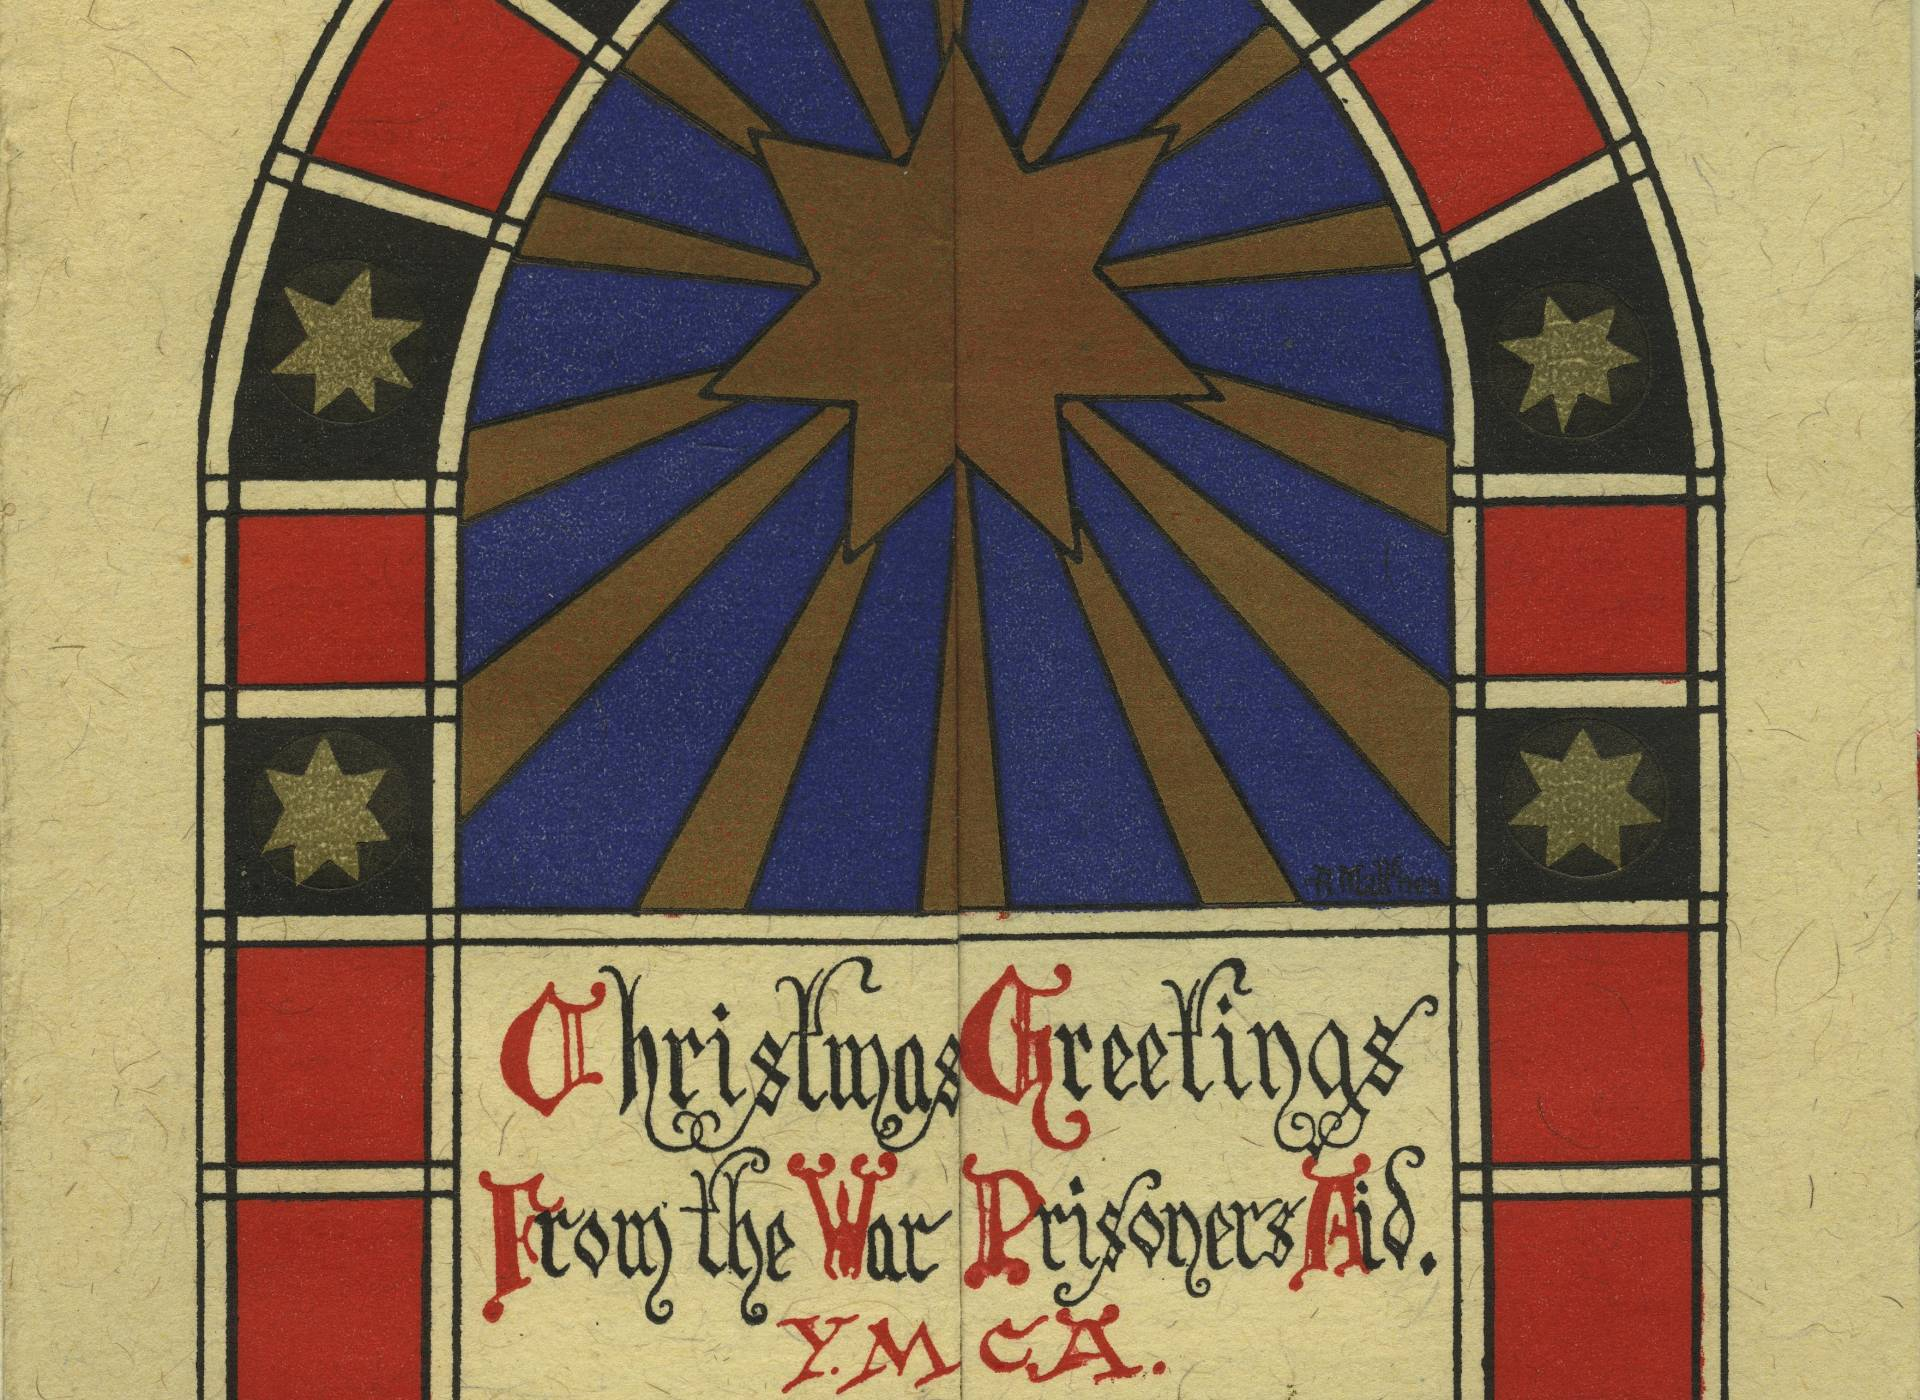 Christmas Card from the War Prisoners Aid of the YMCA